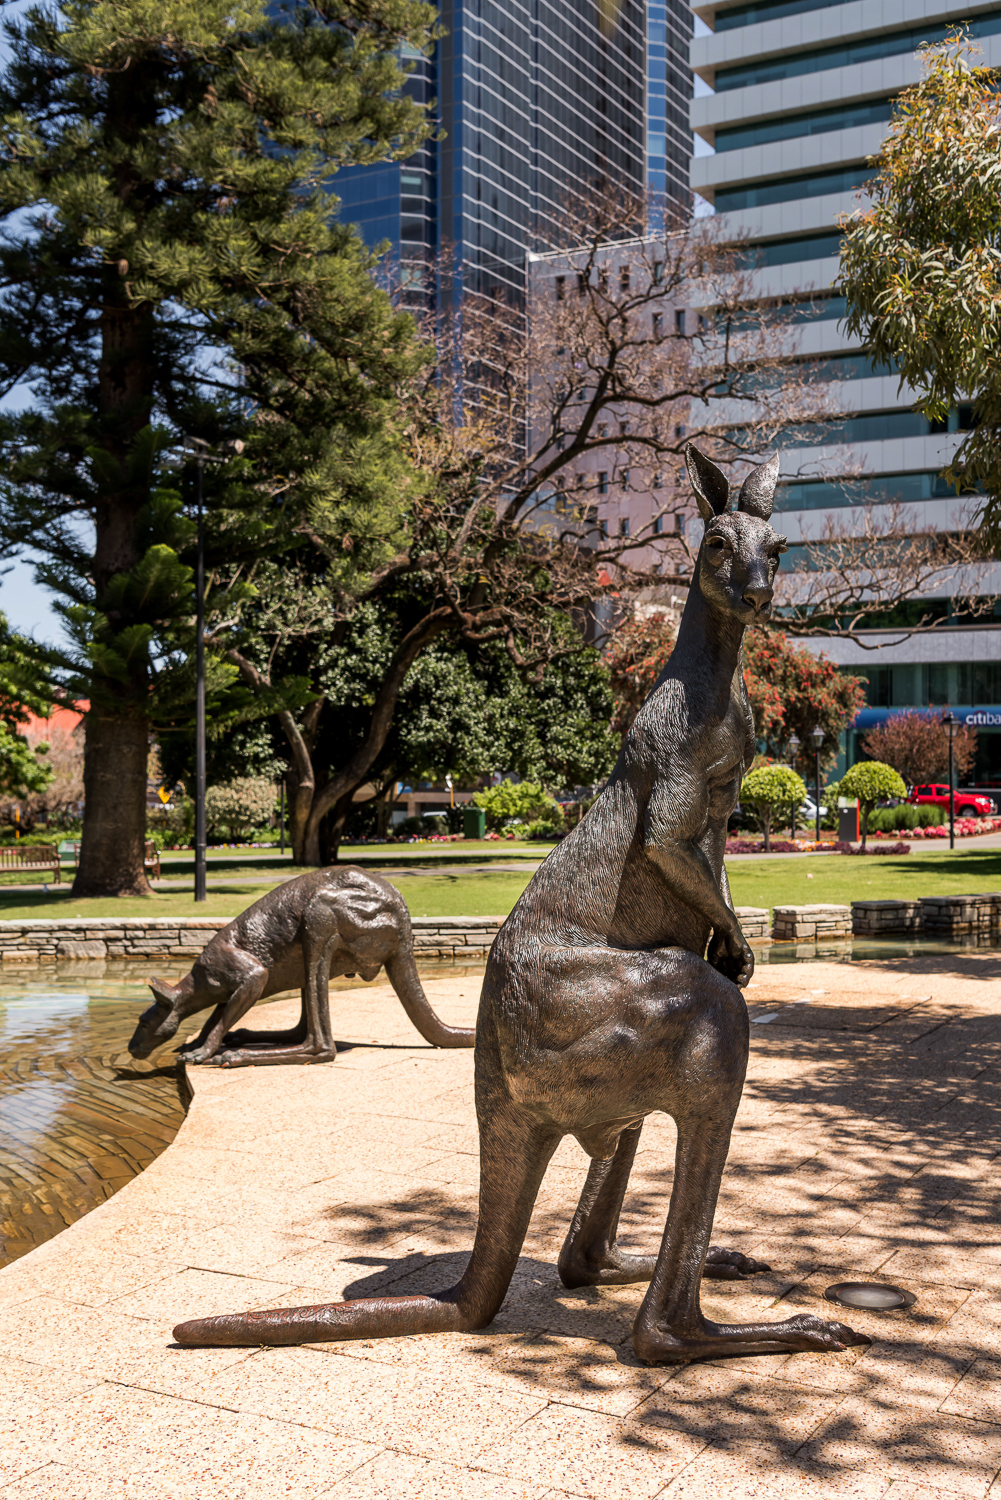 Kangaroos on the Terrace (1997) - Artists Joan Walsh-Smith and Charles SmithCnr Barrack Street and St George's Terrace, PerthThese seven bronze statues of life sized kangaroos are said to represent a mob of kangaroos who have been lazily feeding, but are then startled by the traffic and are about to take off and bounce away down the terrace.This public artwork gives visitors a reason to pause, to consider the contrasting busyness of the city and the peacefulness of the Stirling Gardens, and how we like the kangaroos are caught in between.